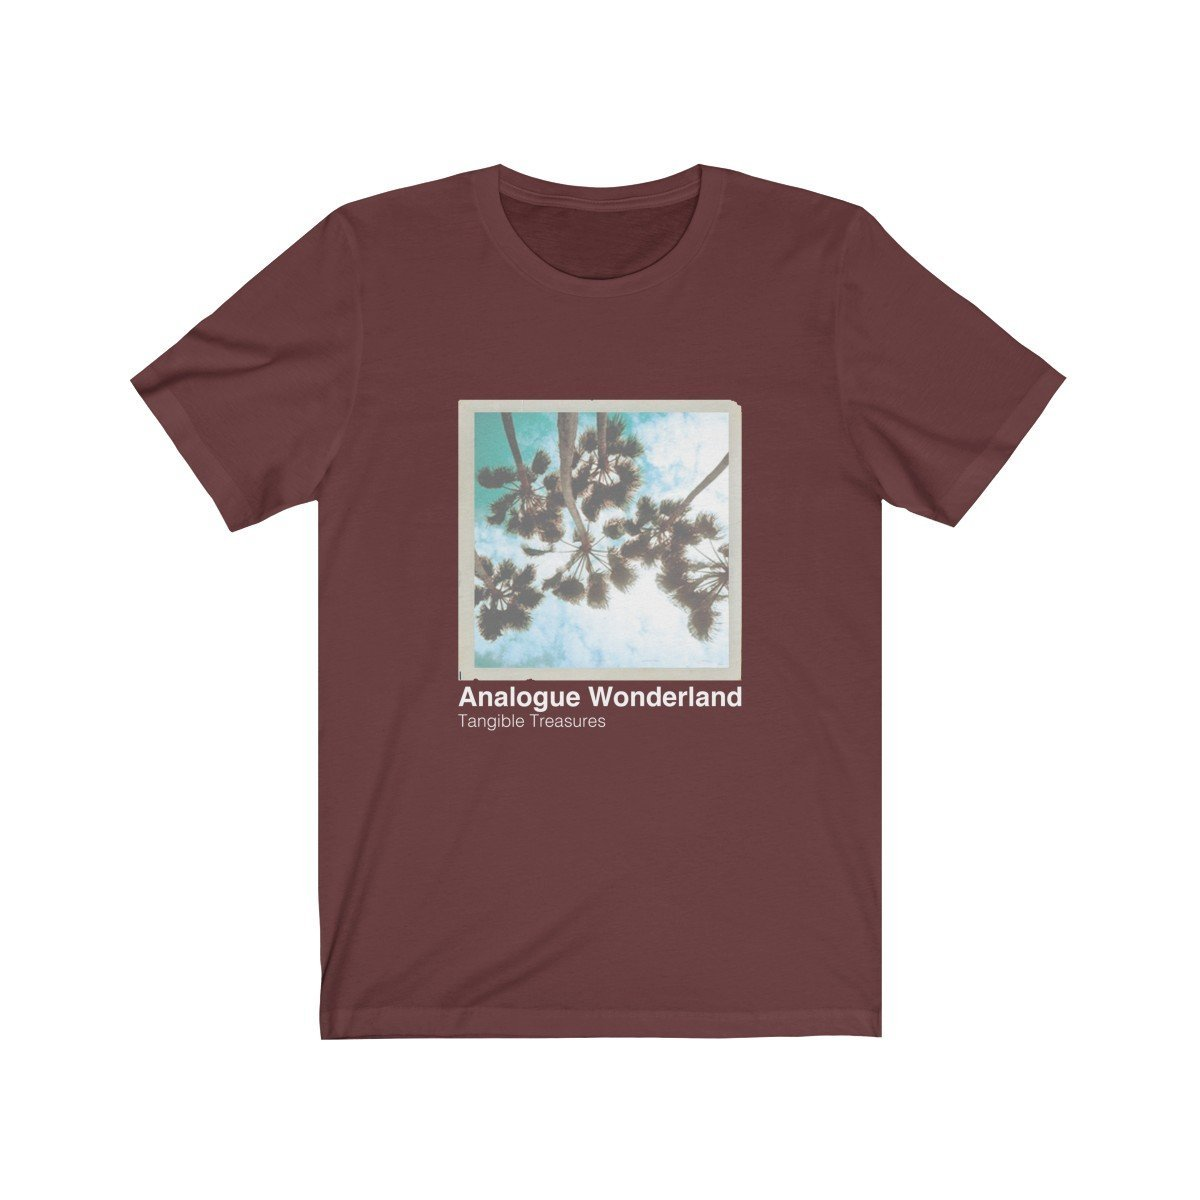 Men's T-Shirt for Film Photographers - Tangible Treasures - Analogue Wonderland